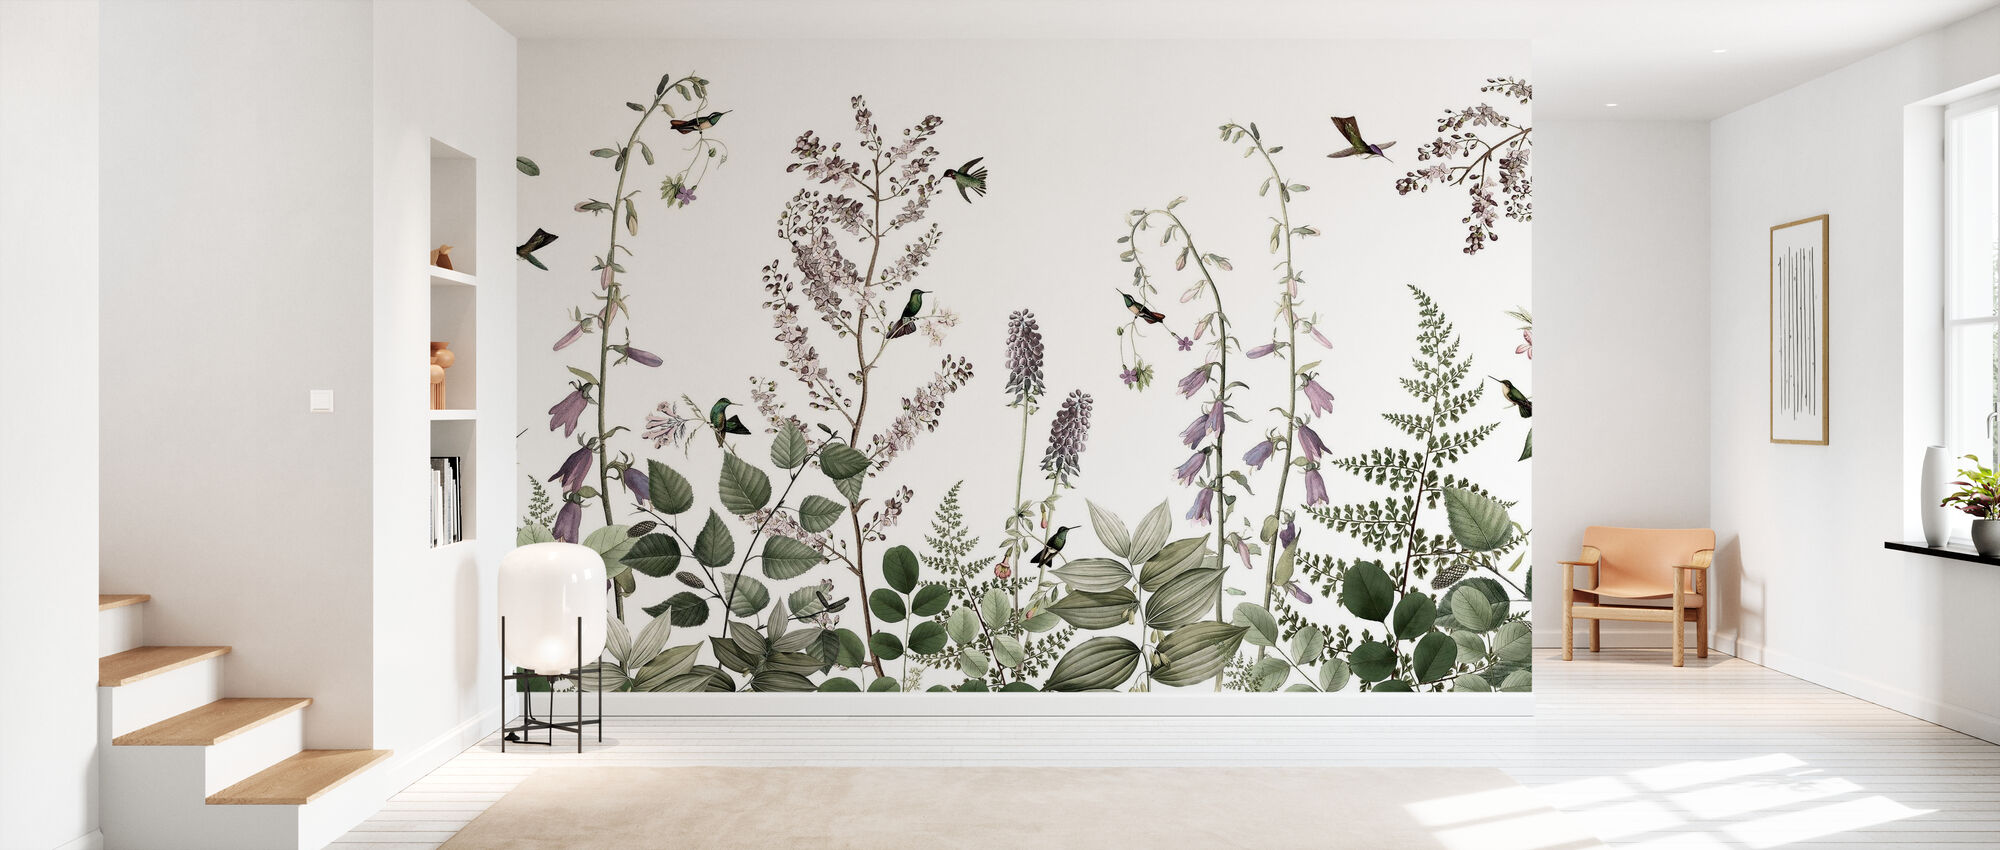 Hummingbird Hedge - Wallpaper - Hallway